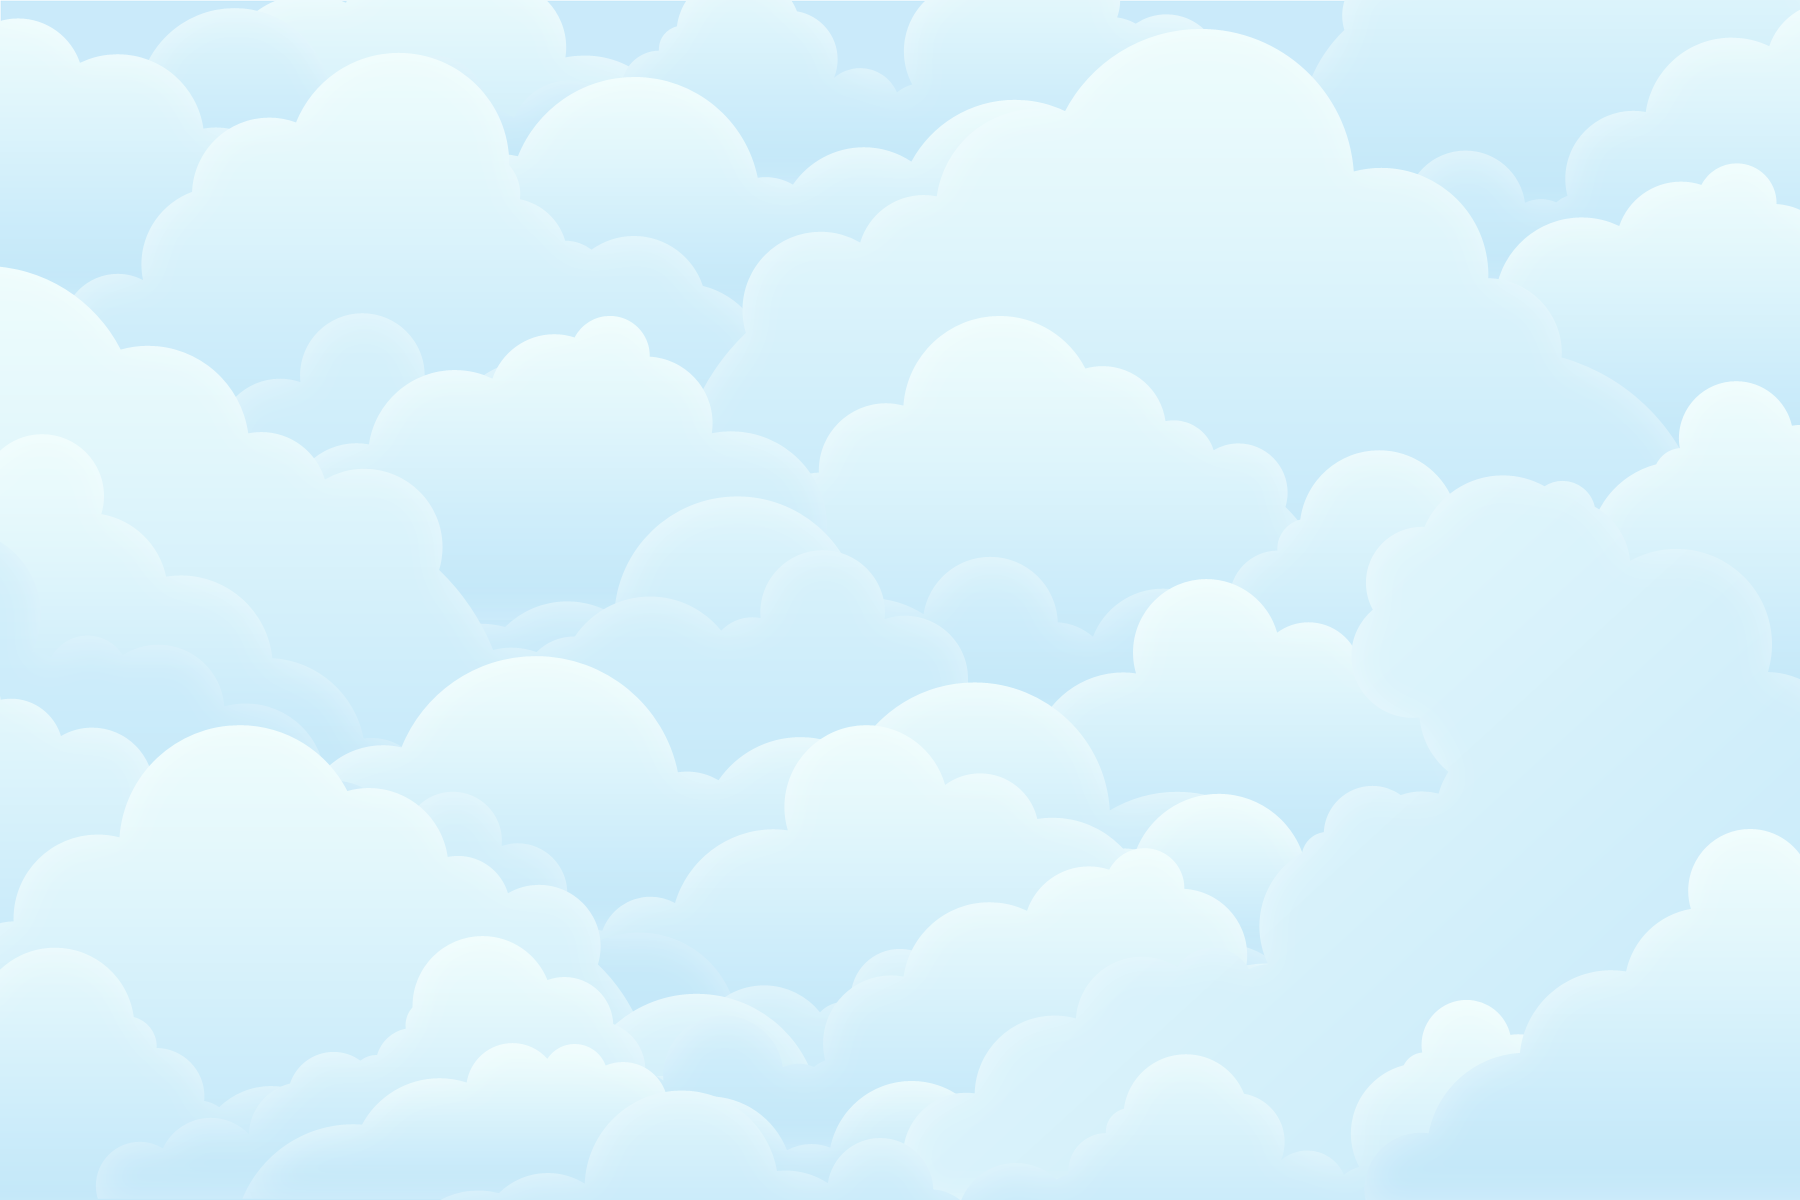 Cloudy Sky Background Png Transparent Cloudy Sky Background Png